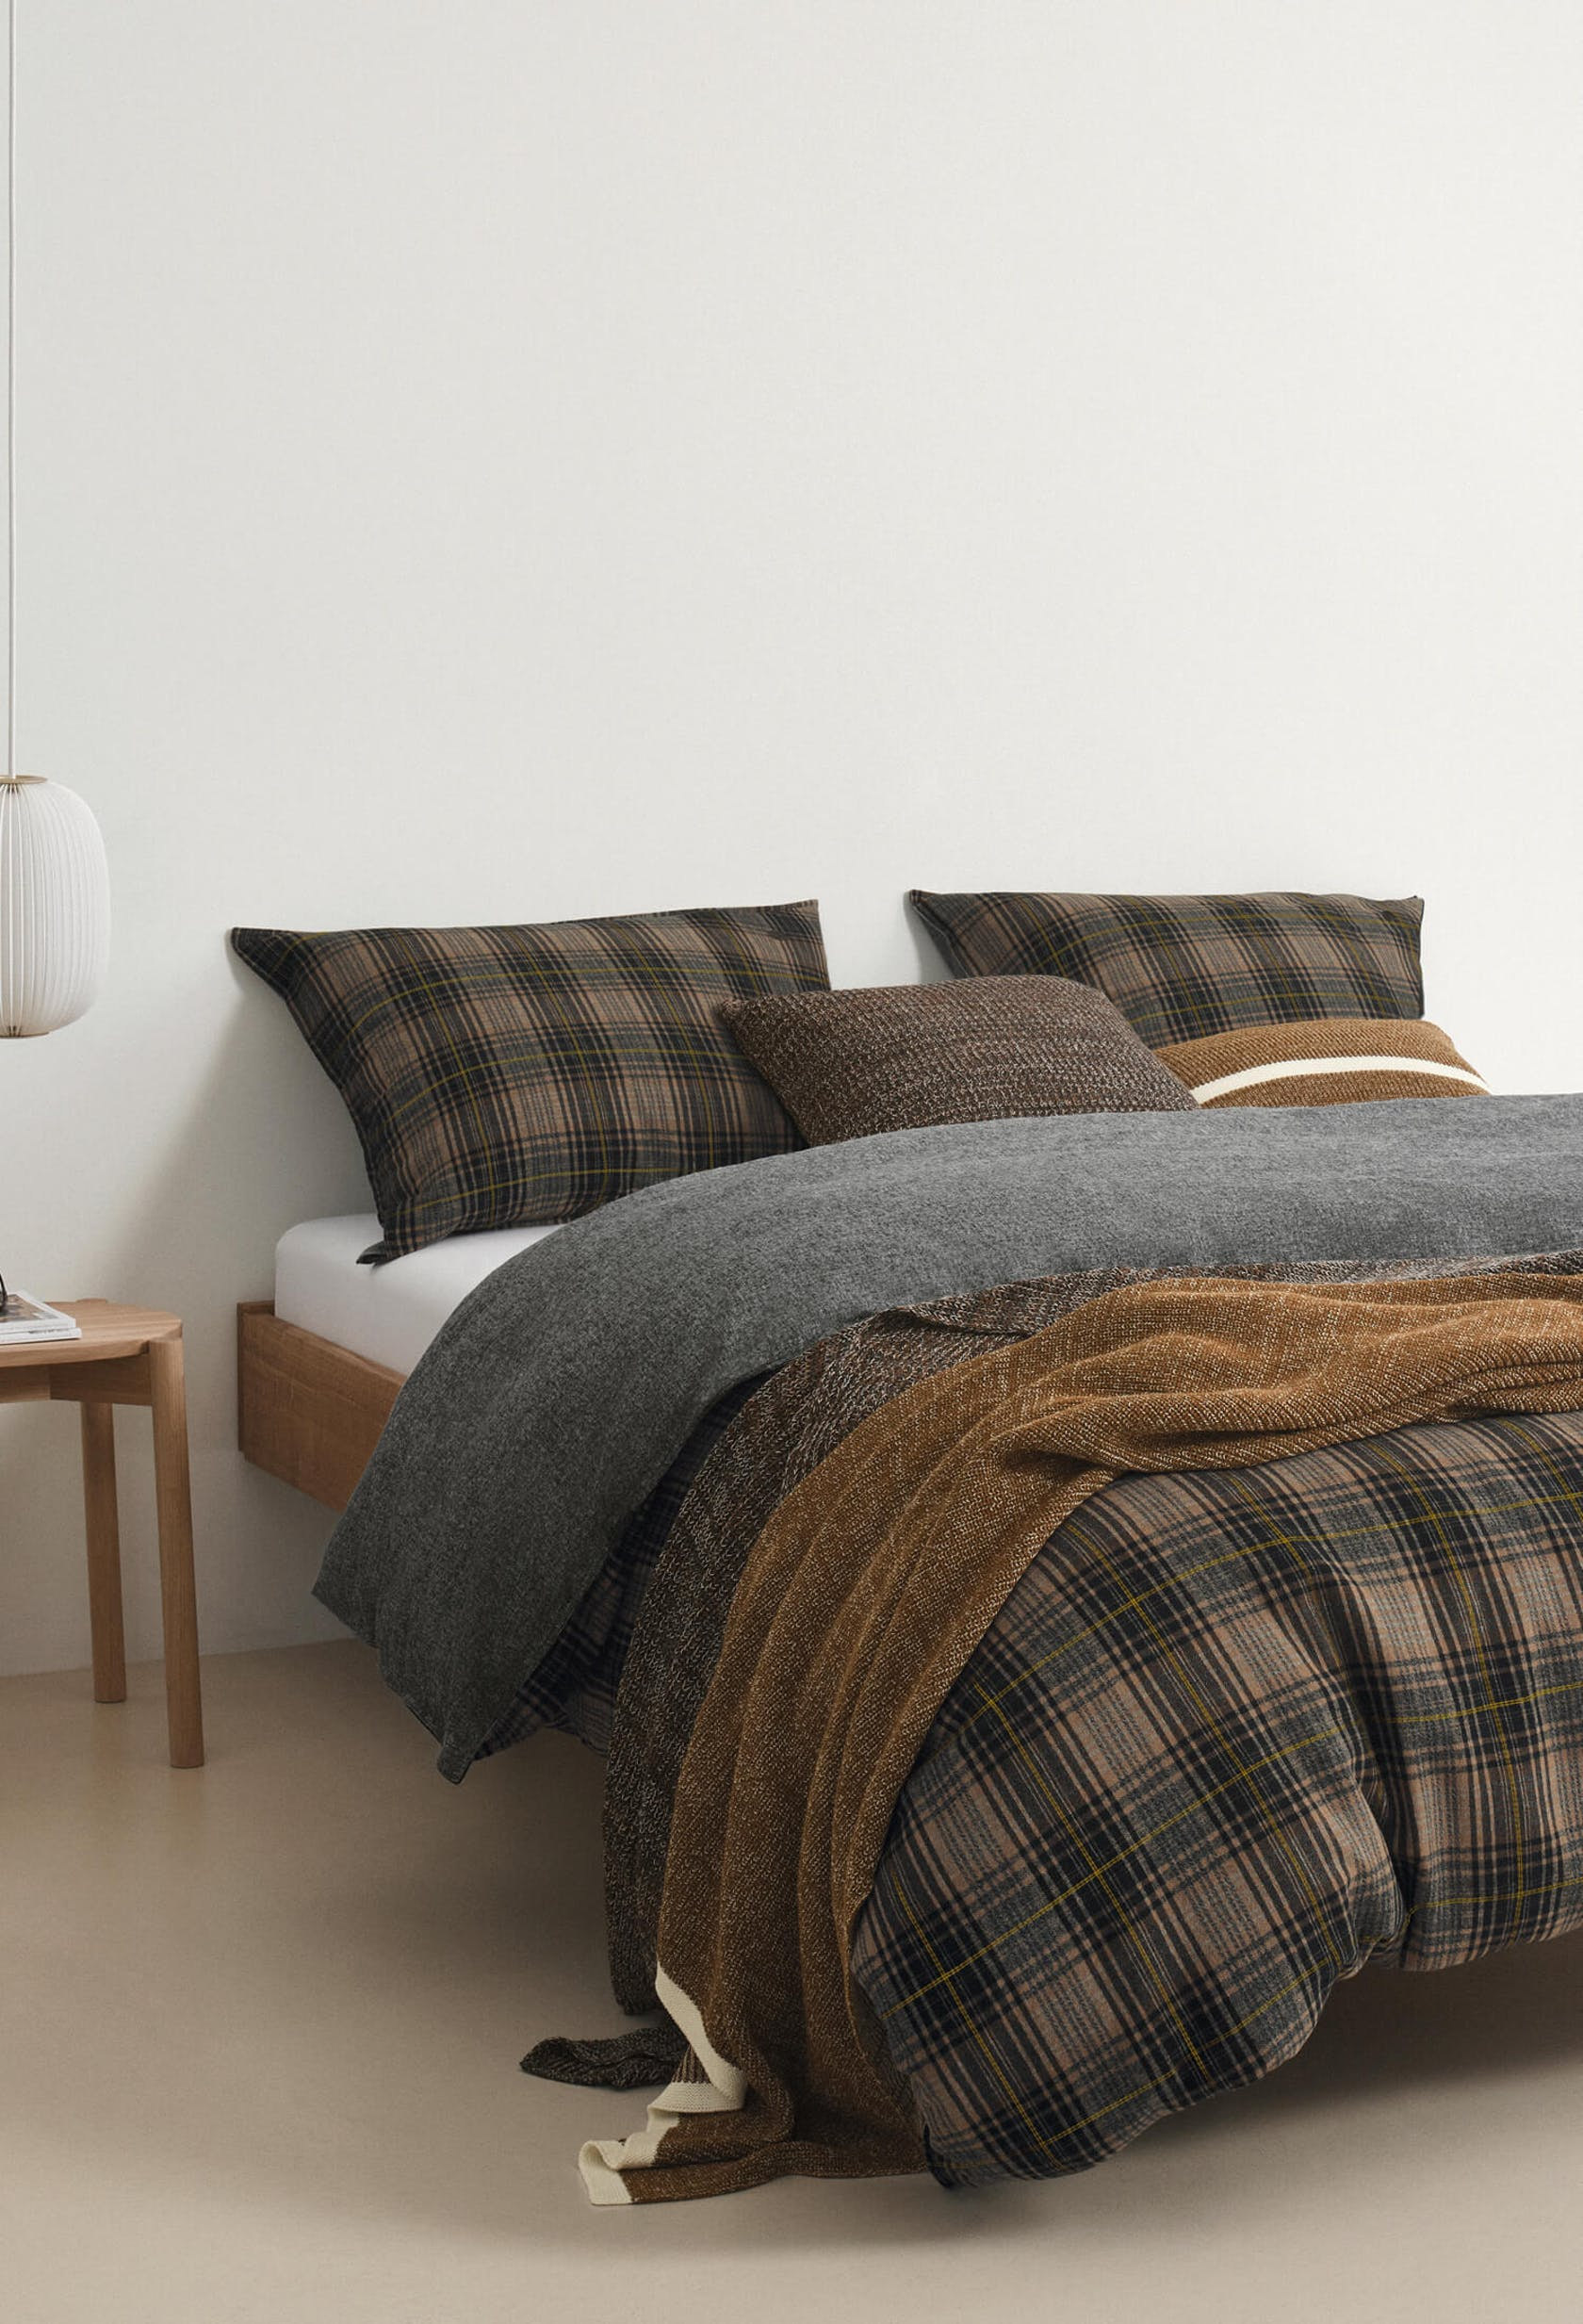 MARC O'POLO bedding